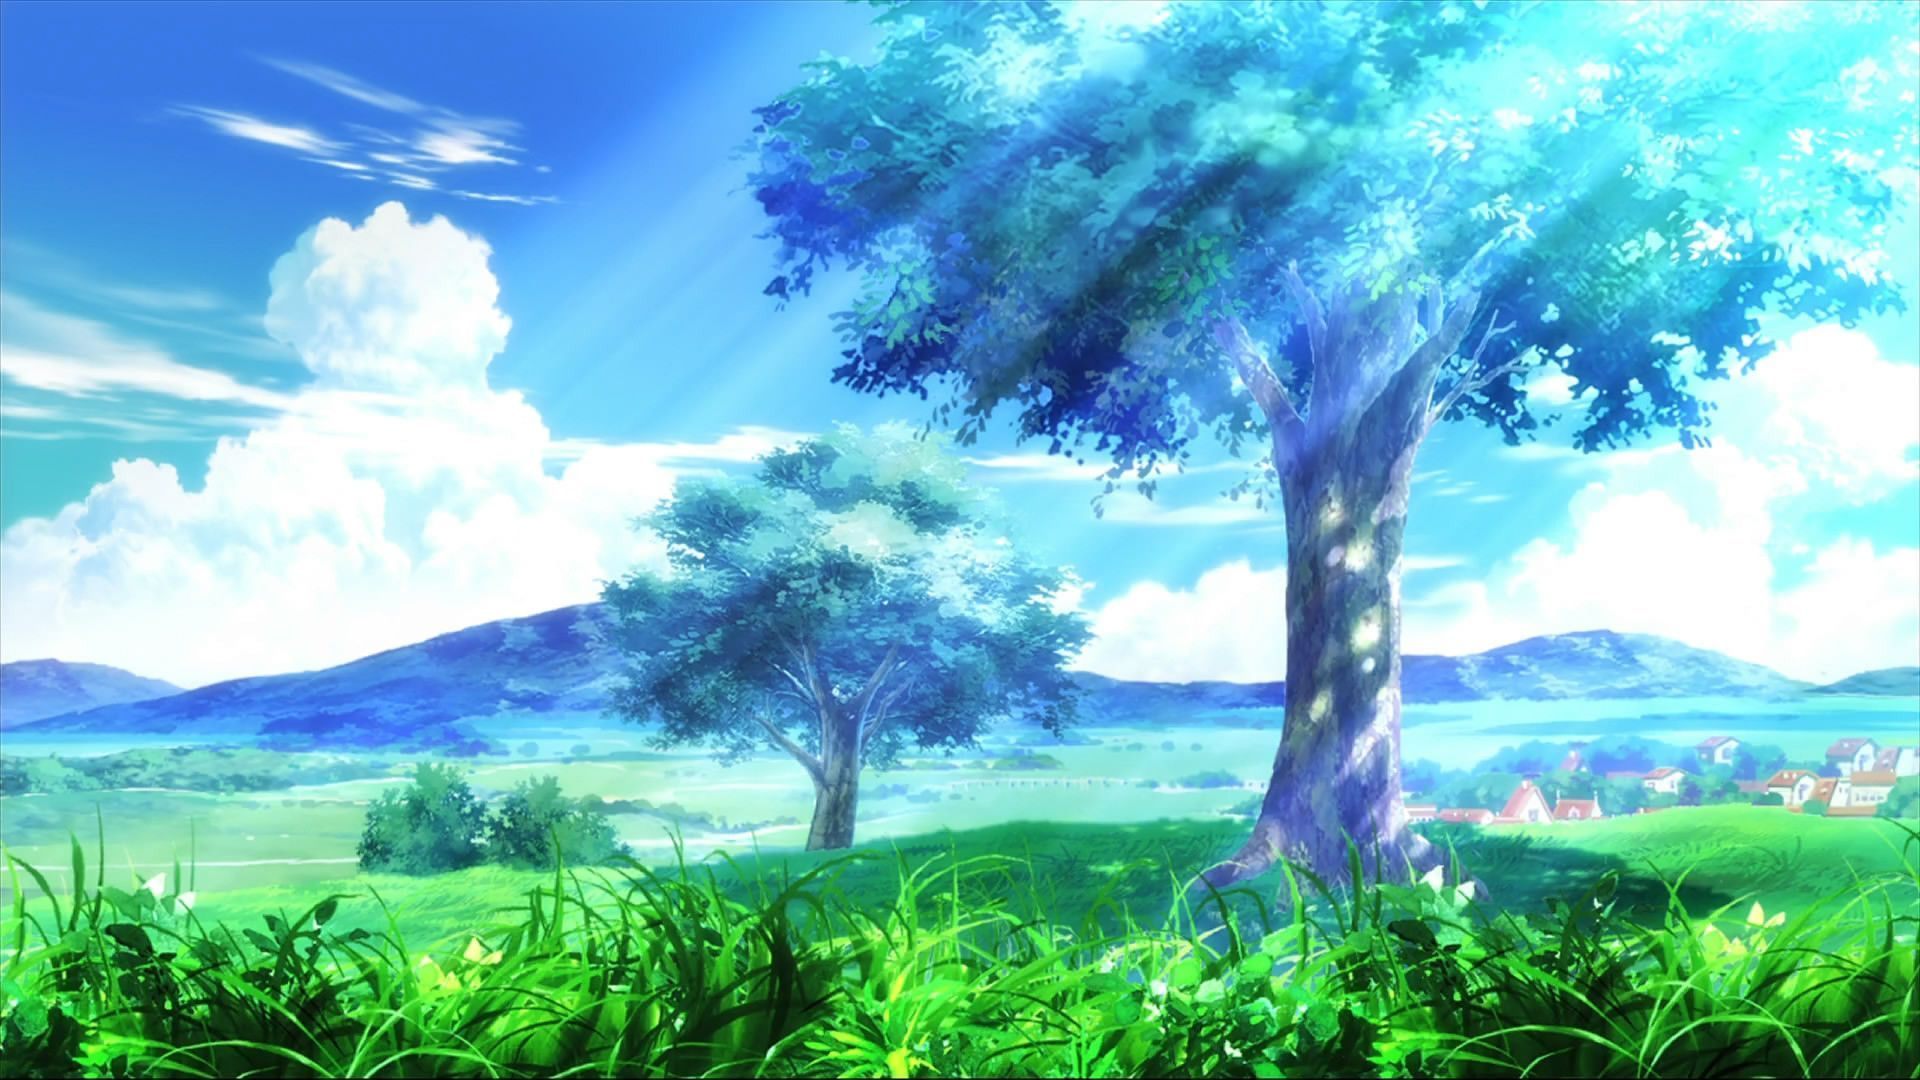 Relaxing Anime Wallpapers 4k Hd Relaxing Anime Backgrounds On Wallpaperbat